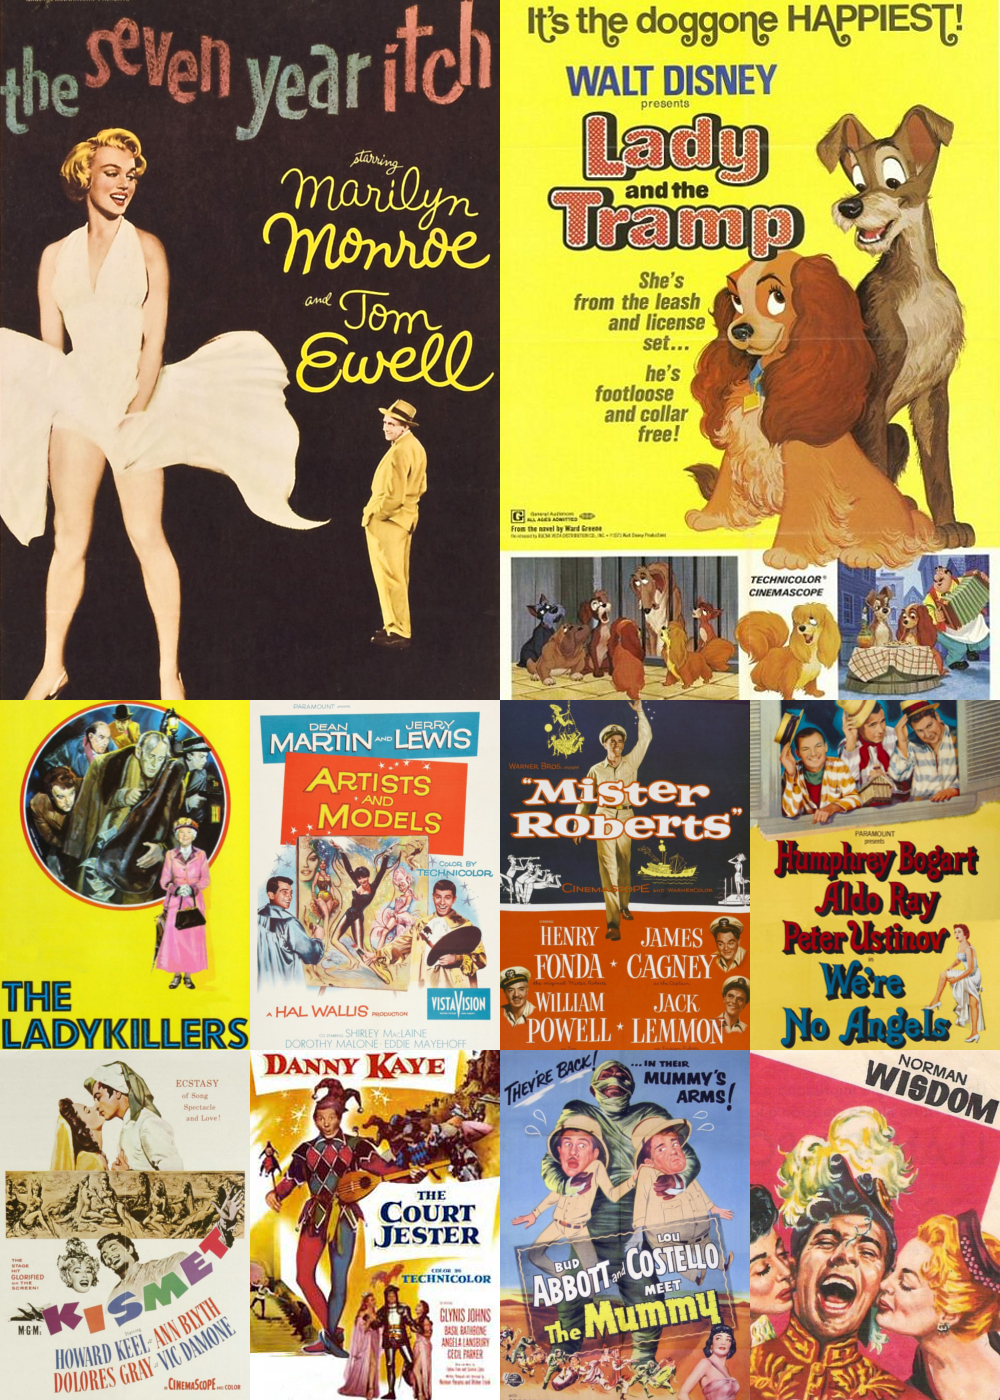 Top 1-10 Comedy Movies 1955